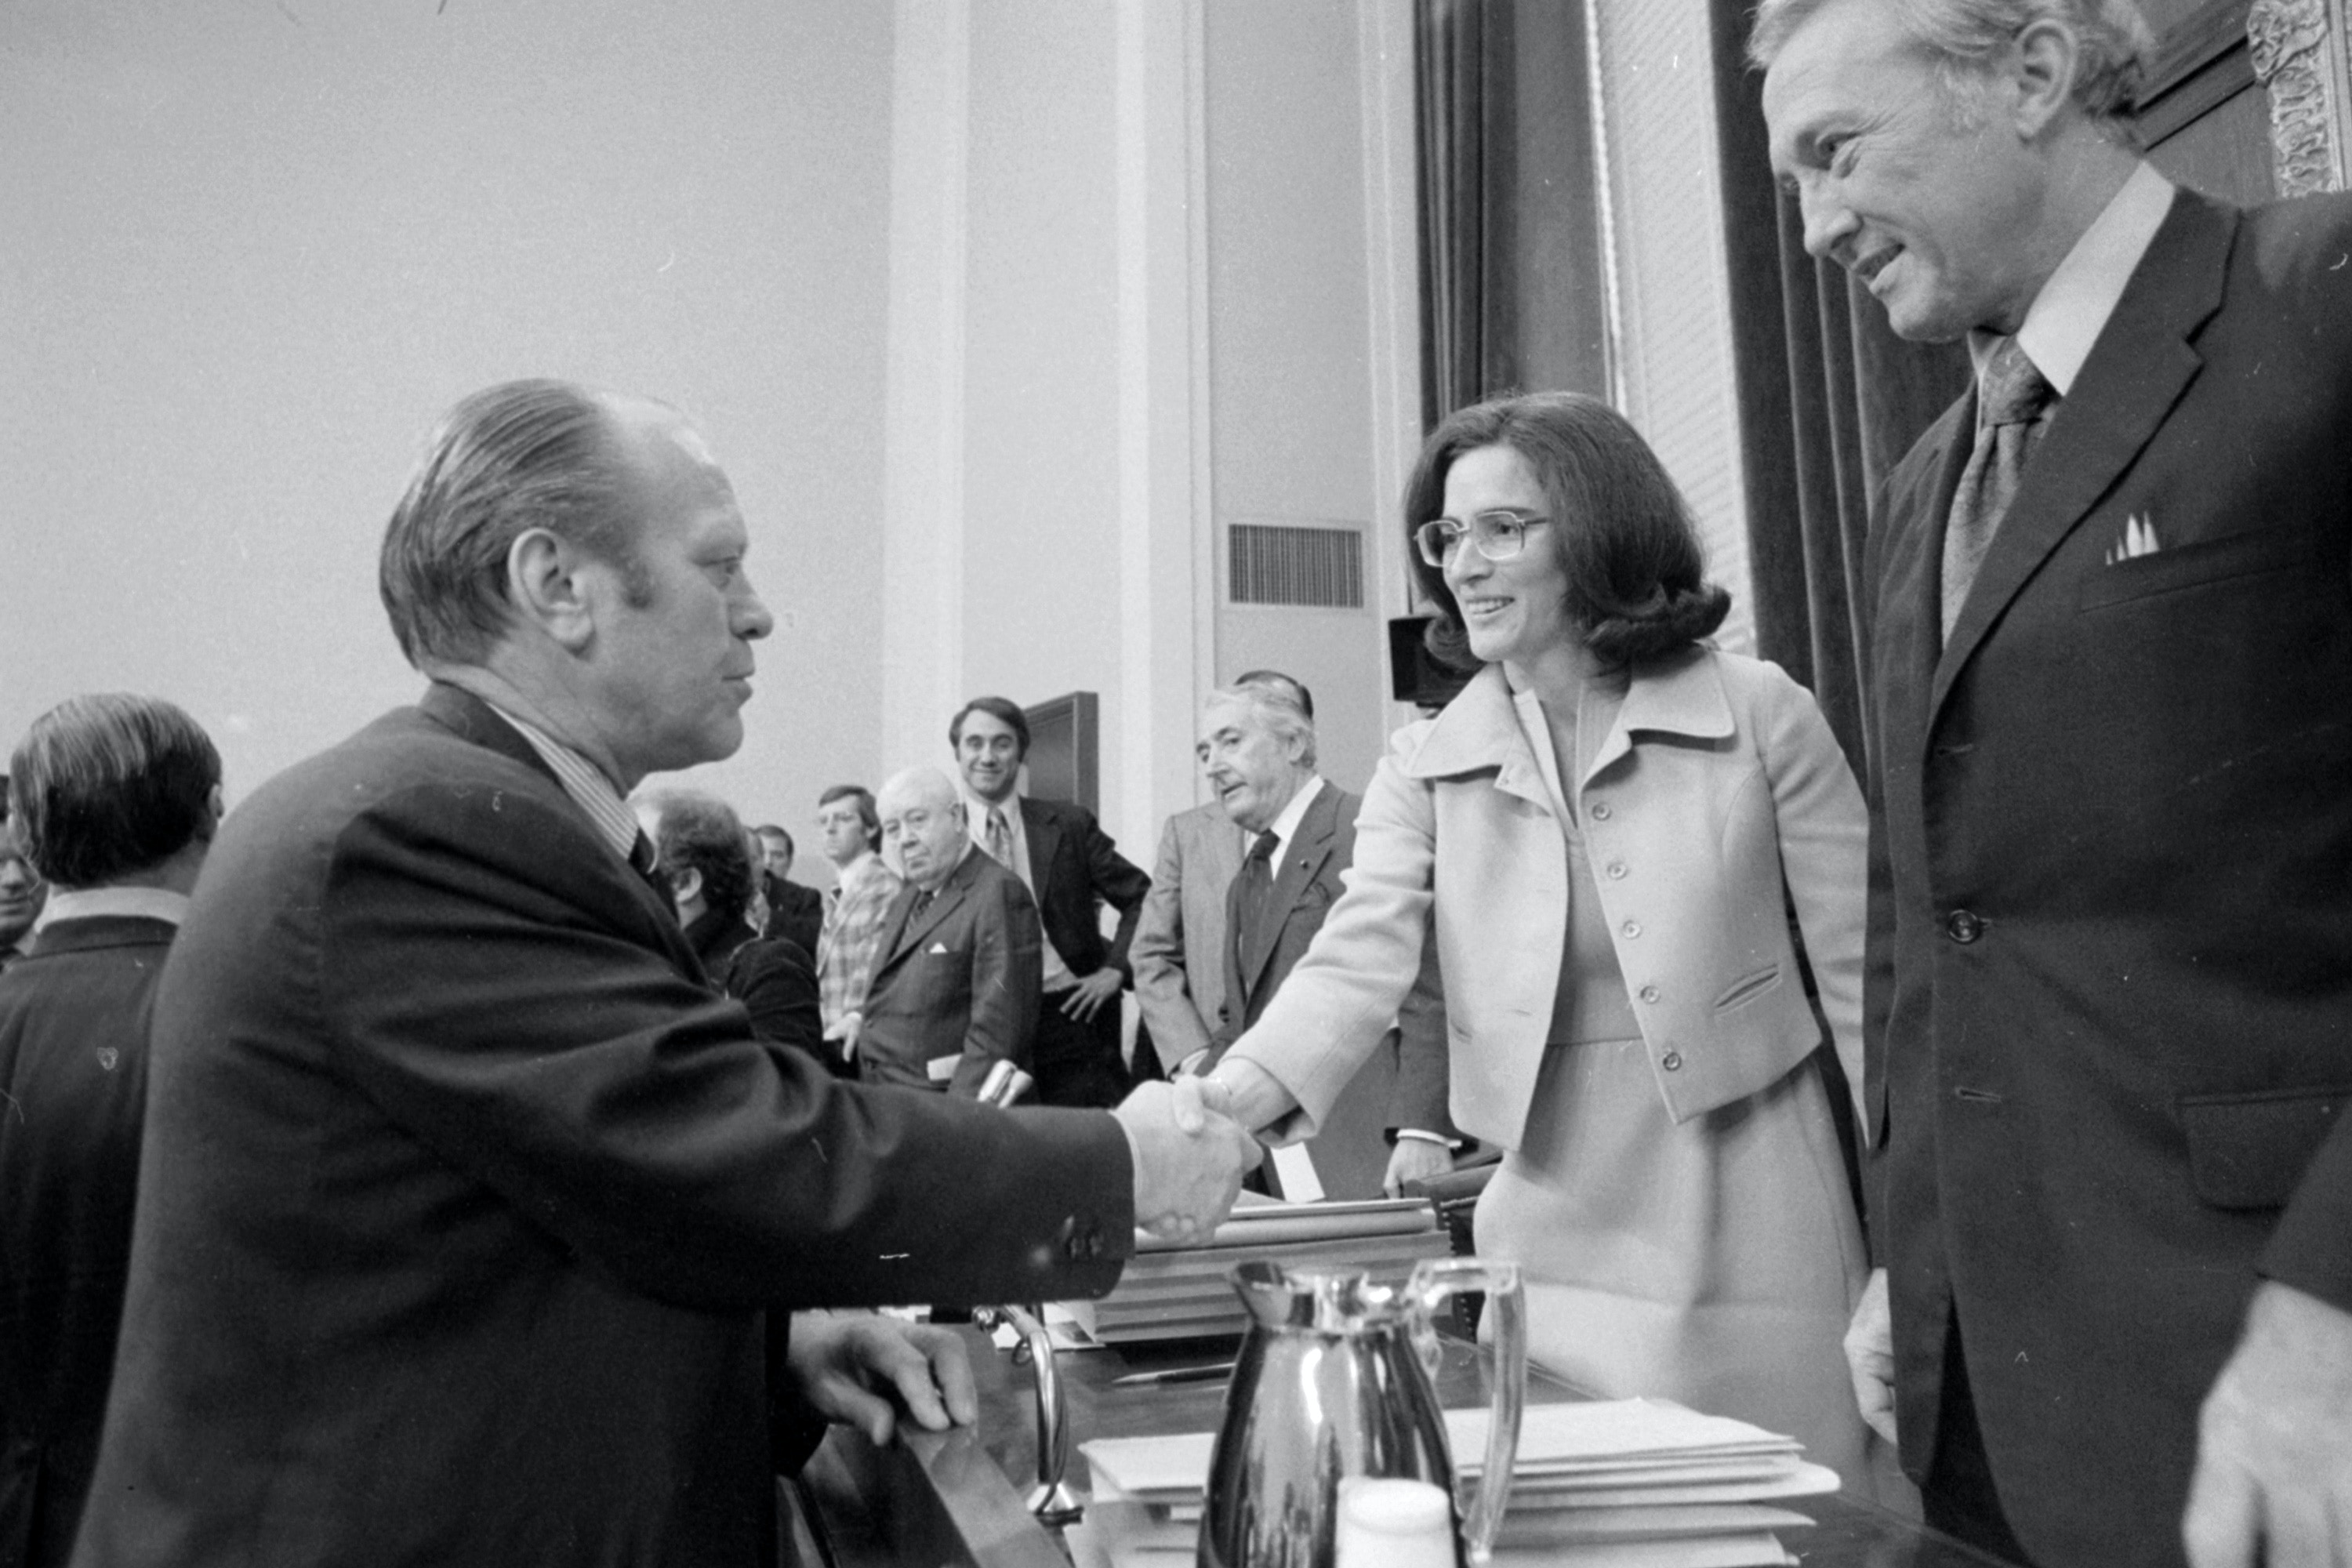 (Original Caption) 10/17/1974-Washington, DC- President Ford shakes hands with Representative Elizabeth Holtzman (D-NY), after Ford completed his testimony to the House Judiciary subcommittee on his reasons for granting a pardon to former President M. Nixon. Representative Holtzman is the subcommittee's most outspoken critic of the pardon.